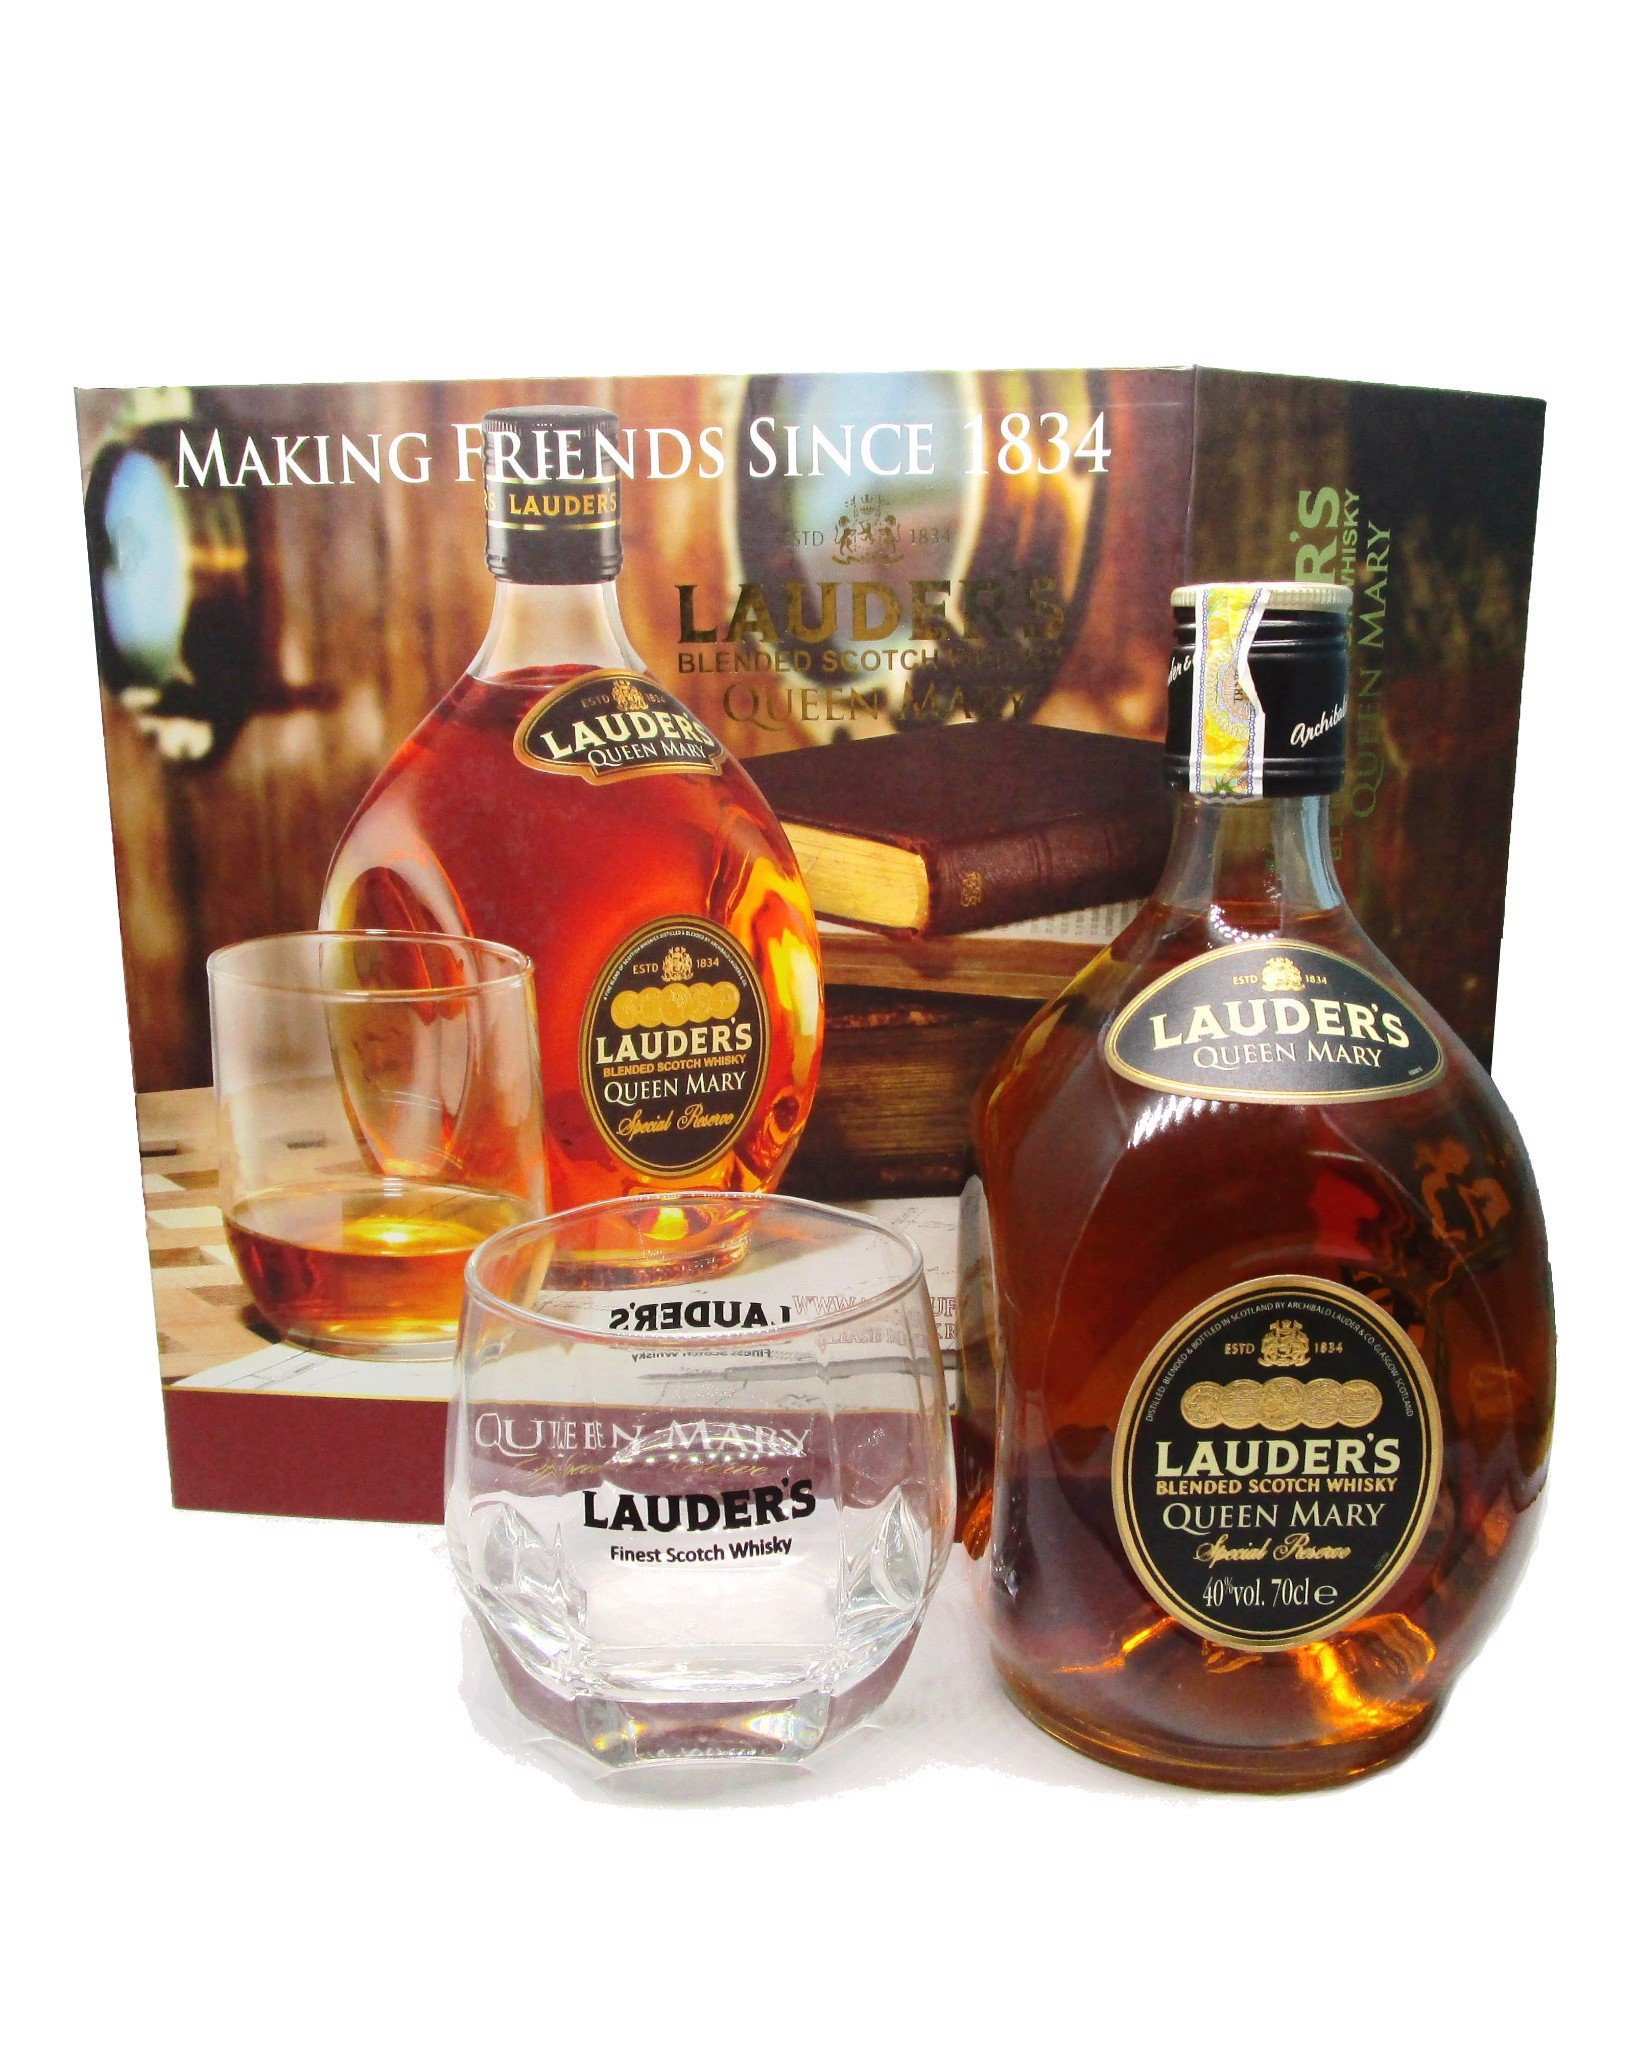 Lauder's Queen Mary Scotch Whisky 700ml 40%